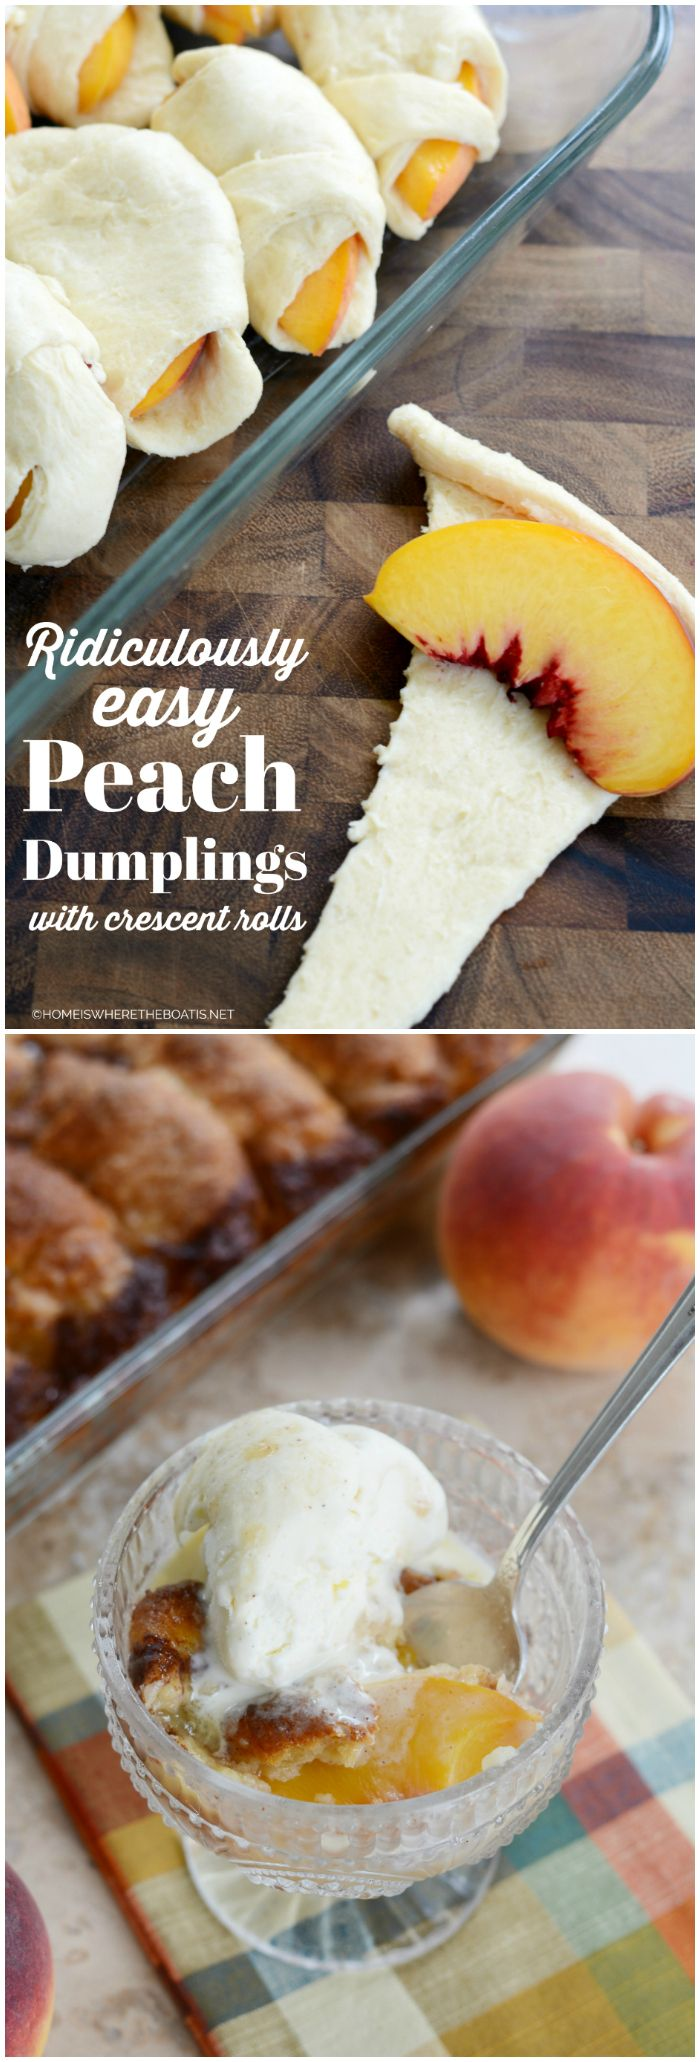 Ridiculously Easy Peach Dumplings for Summers Last Hurrah